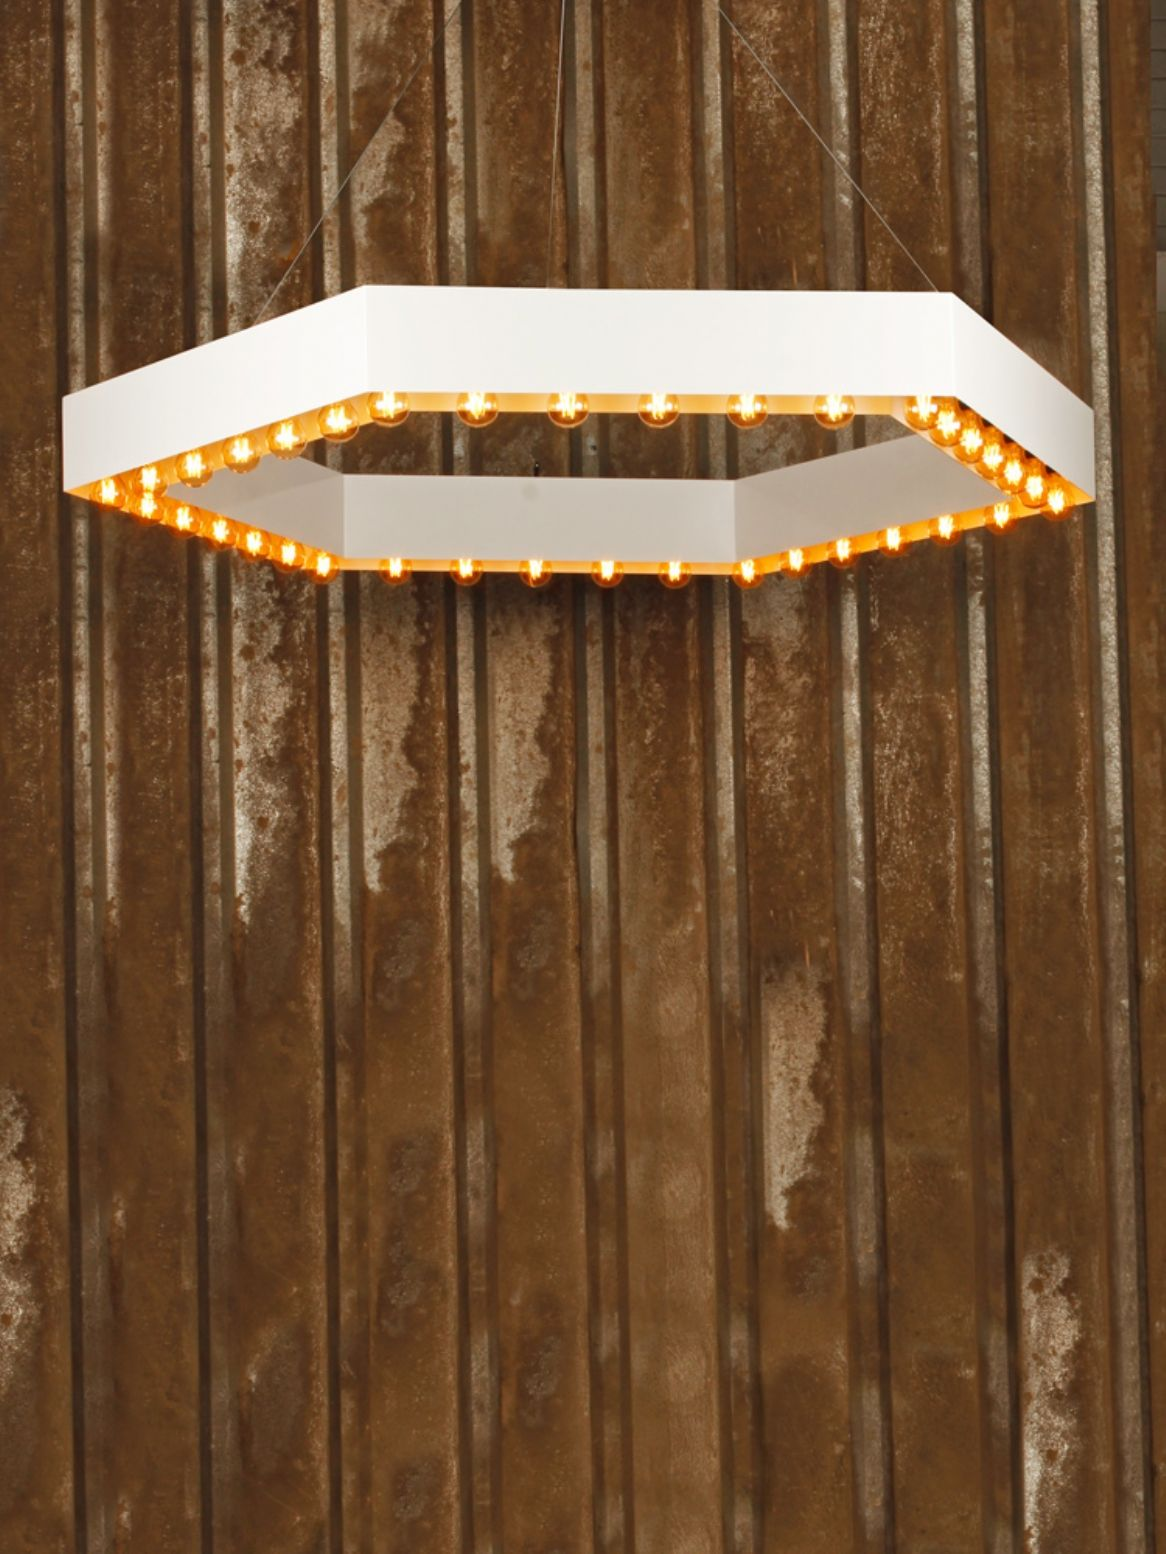 Bespoke feature ceiling pendant light with a white hexagonal ring